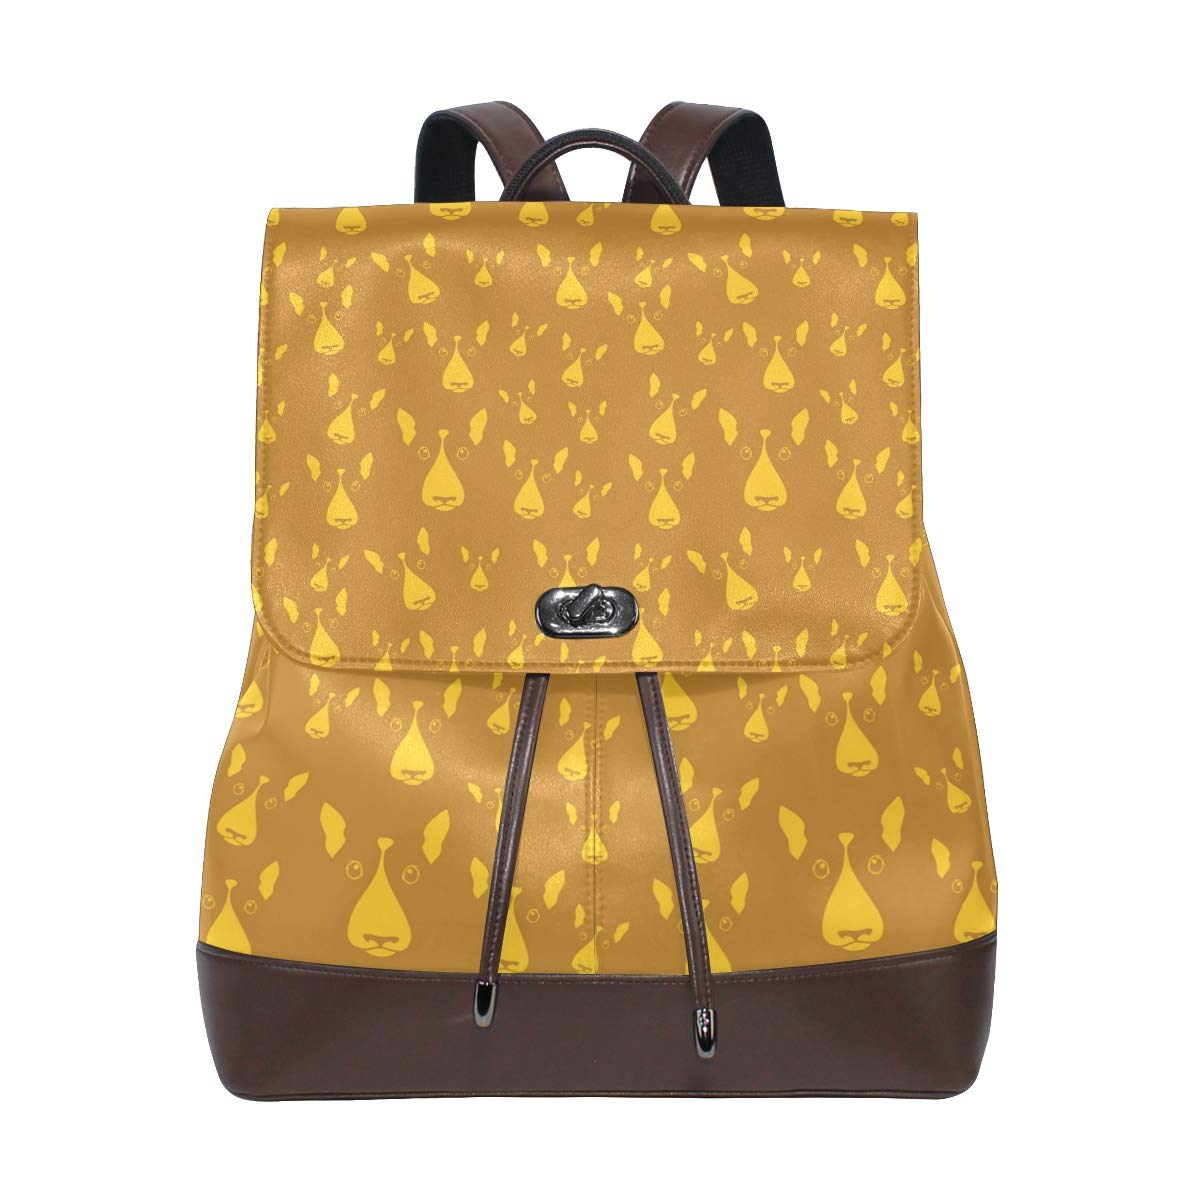 Leather Happy Dog Gold Backpack Daypack Bag Women